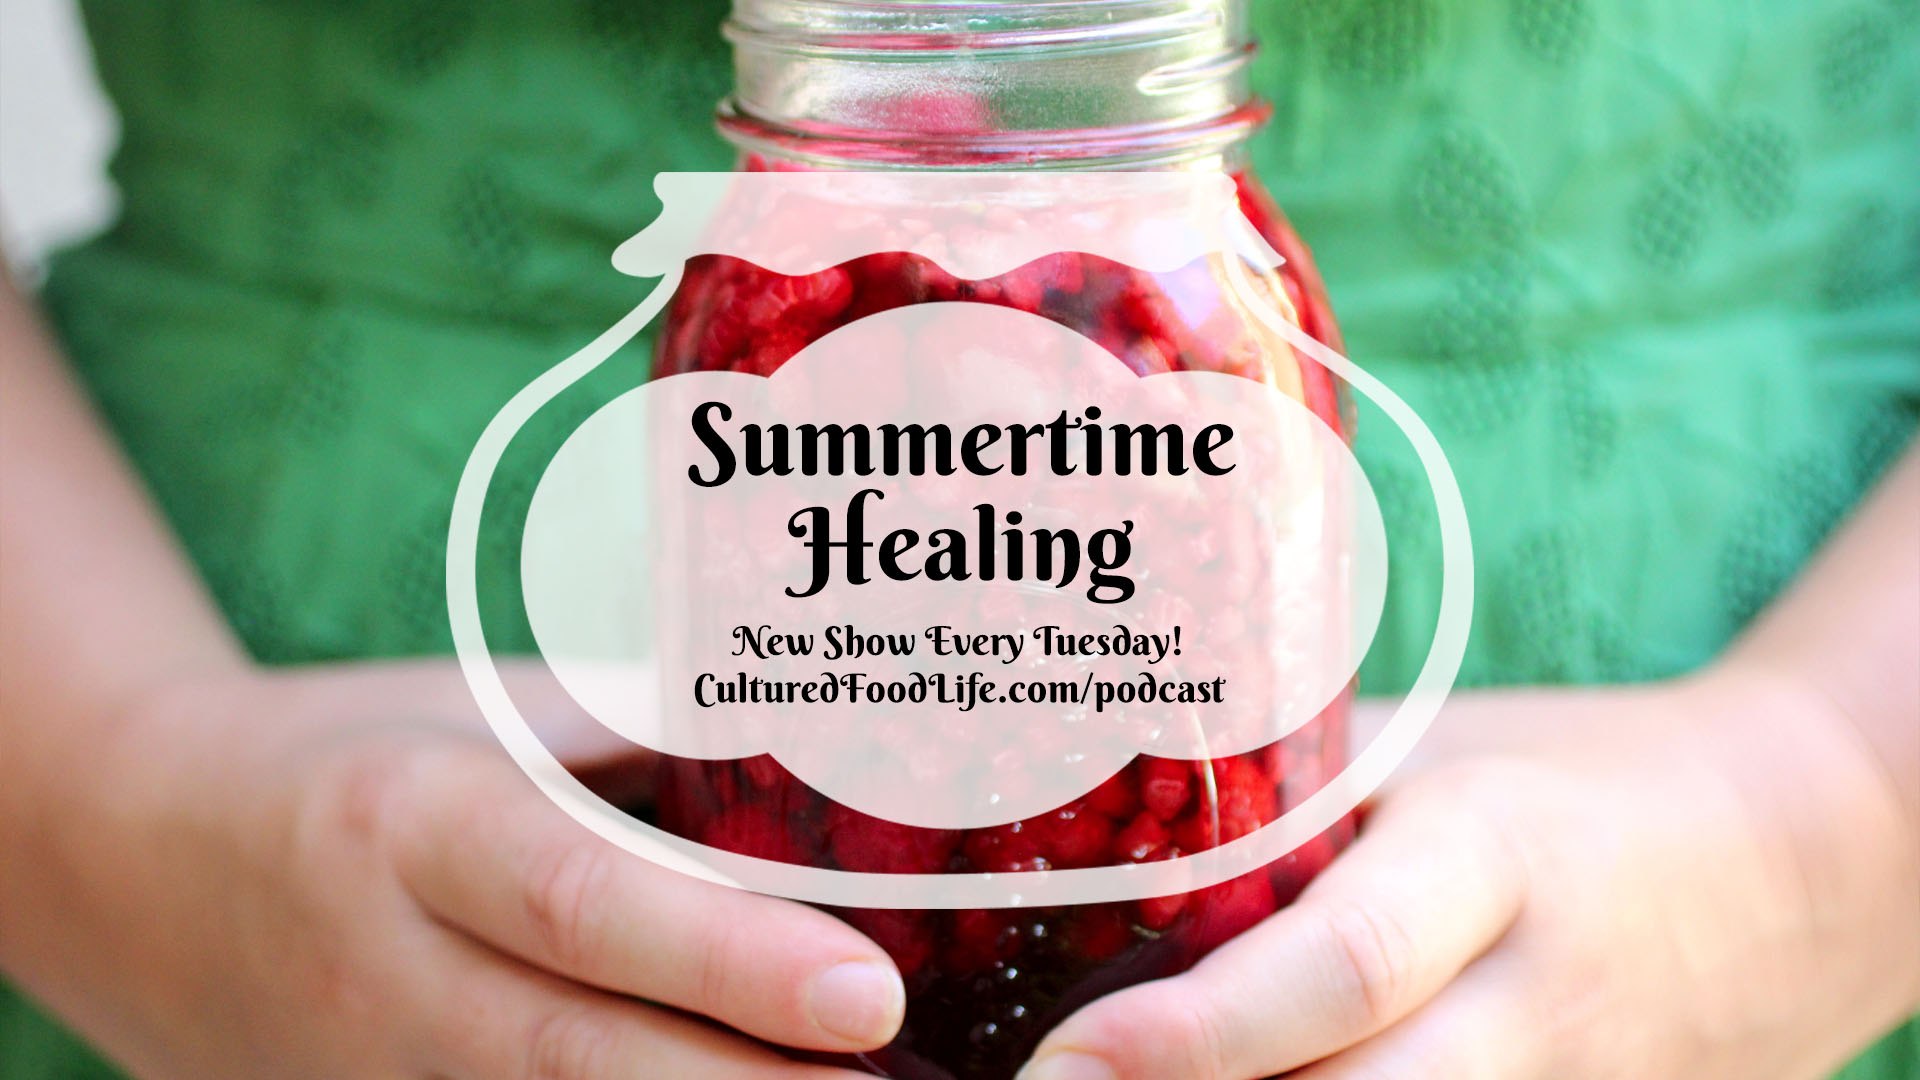 Summertime Healing Full